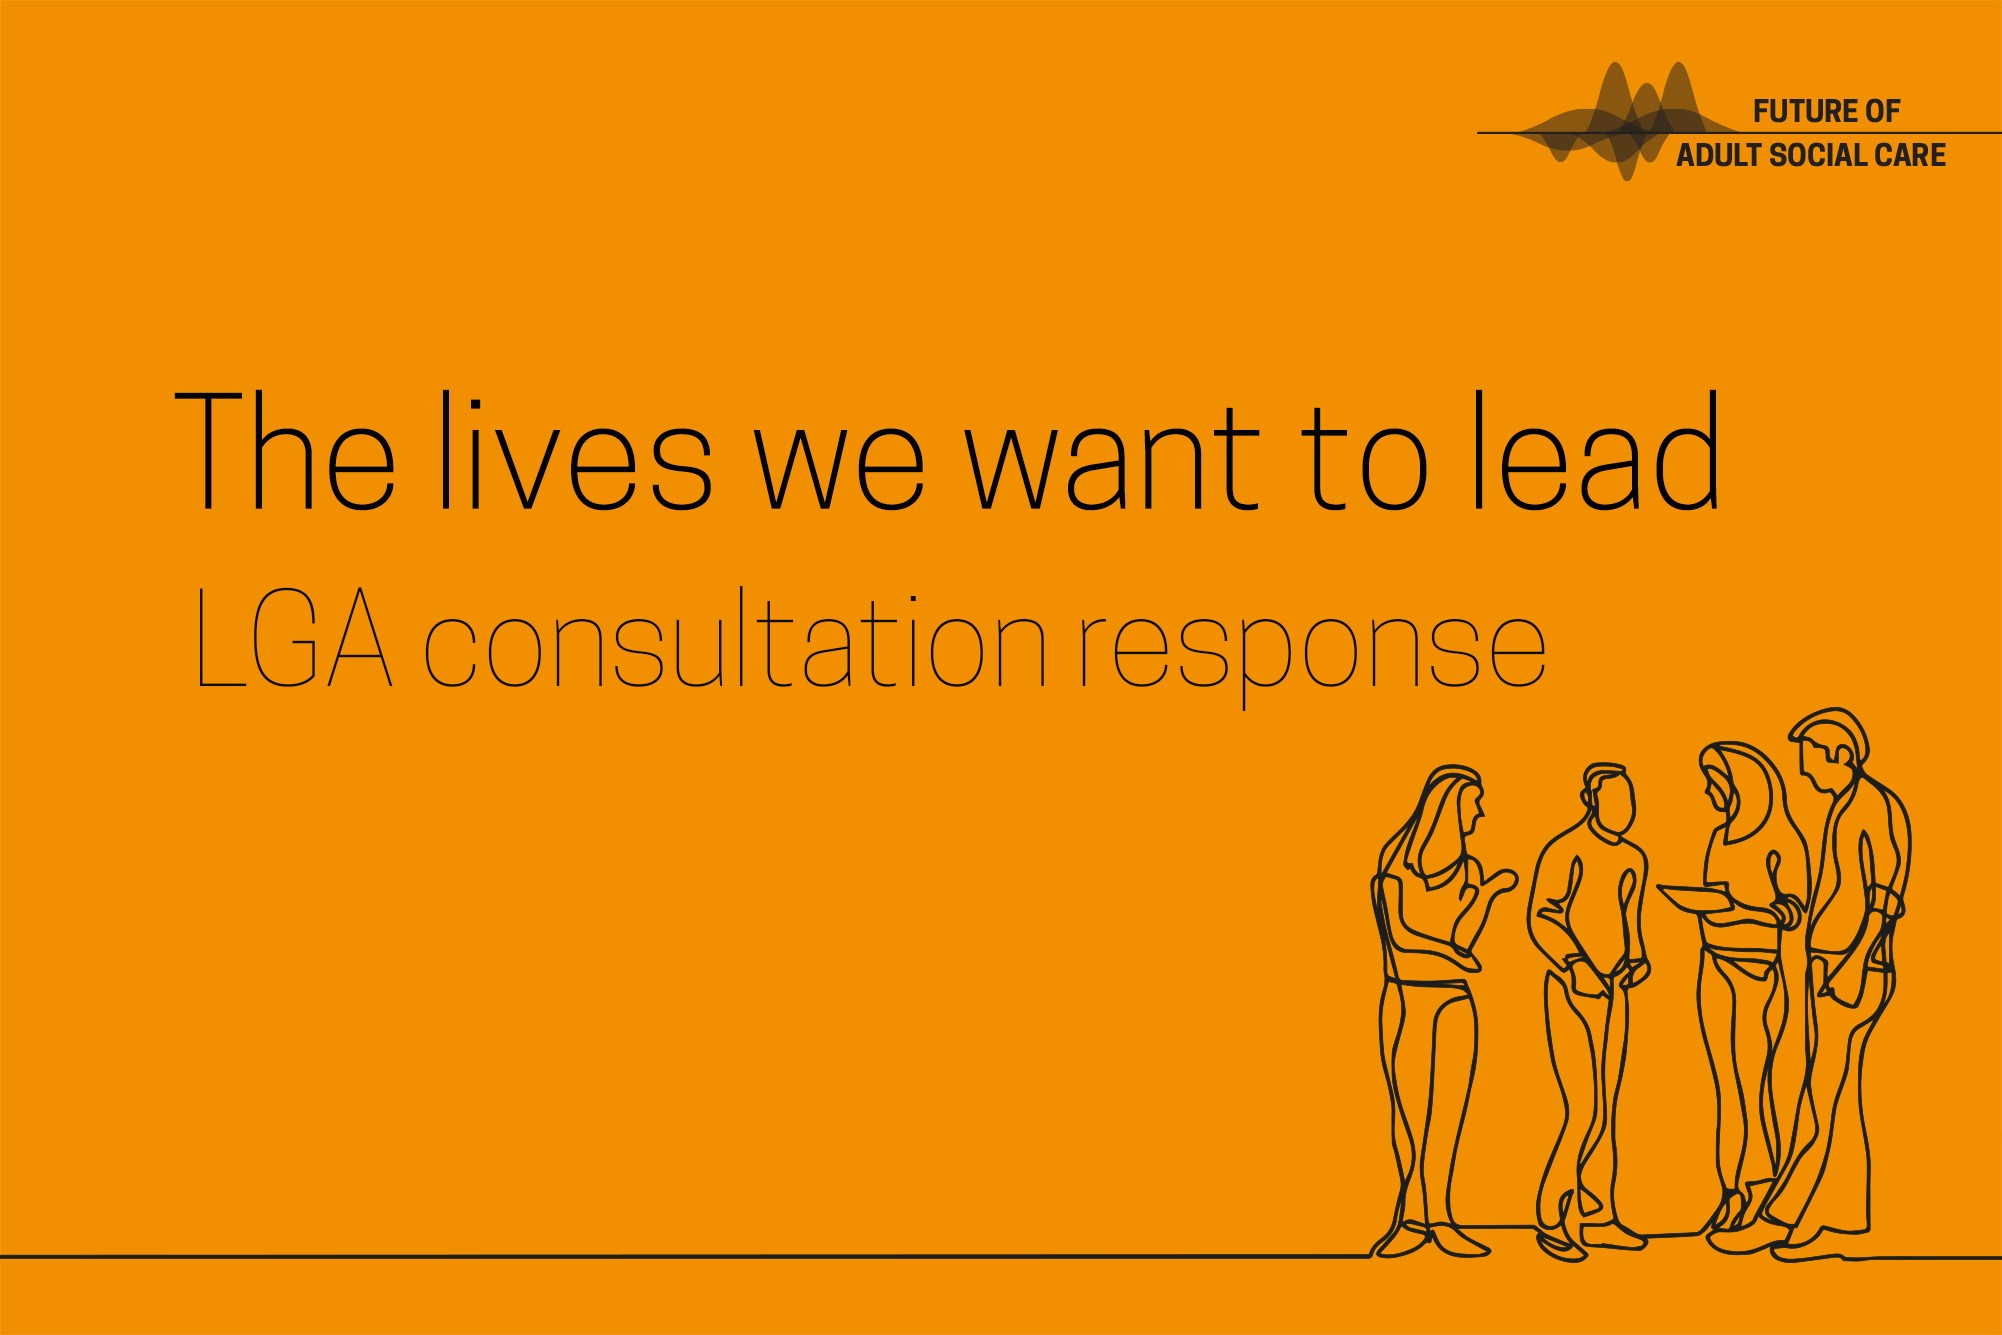 The lives we want to lead - consultation response